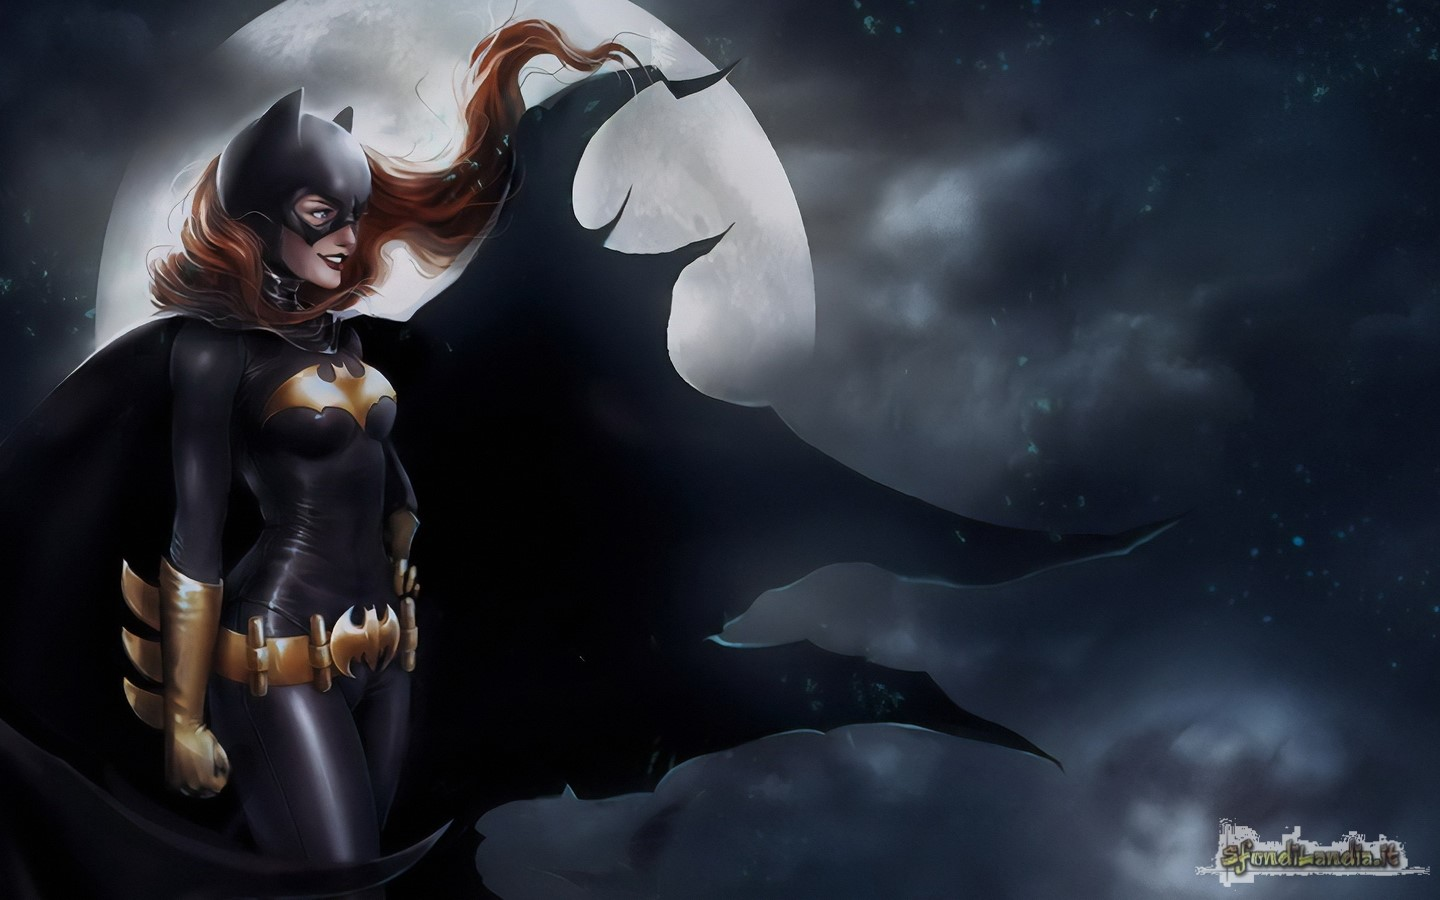 Batwoman In The Night